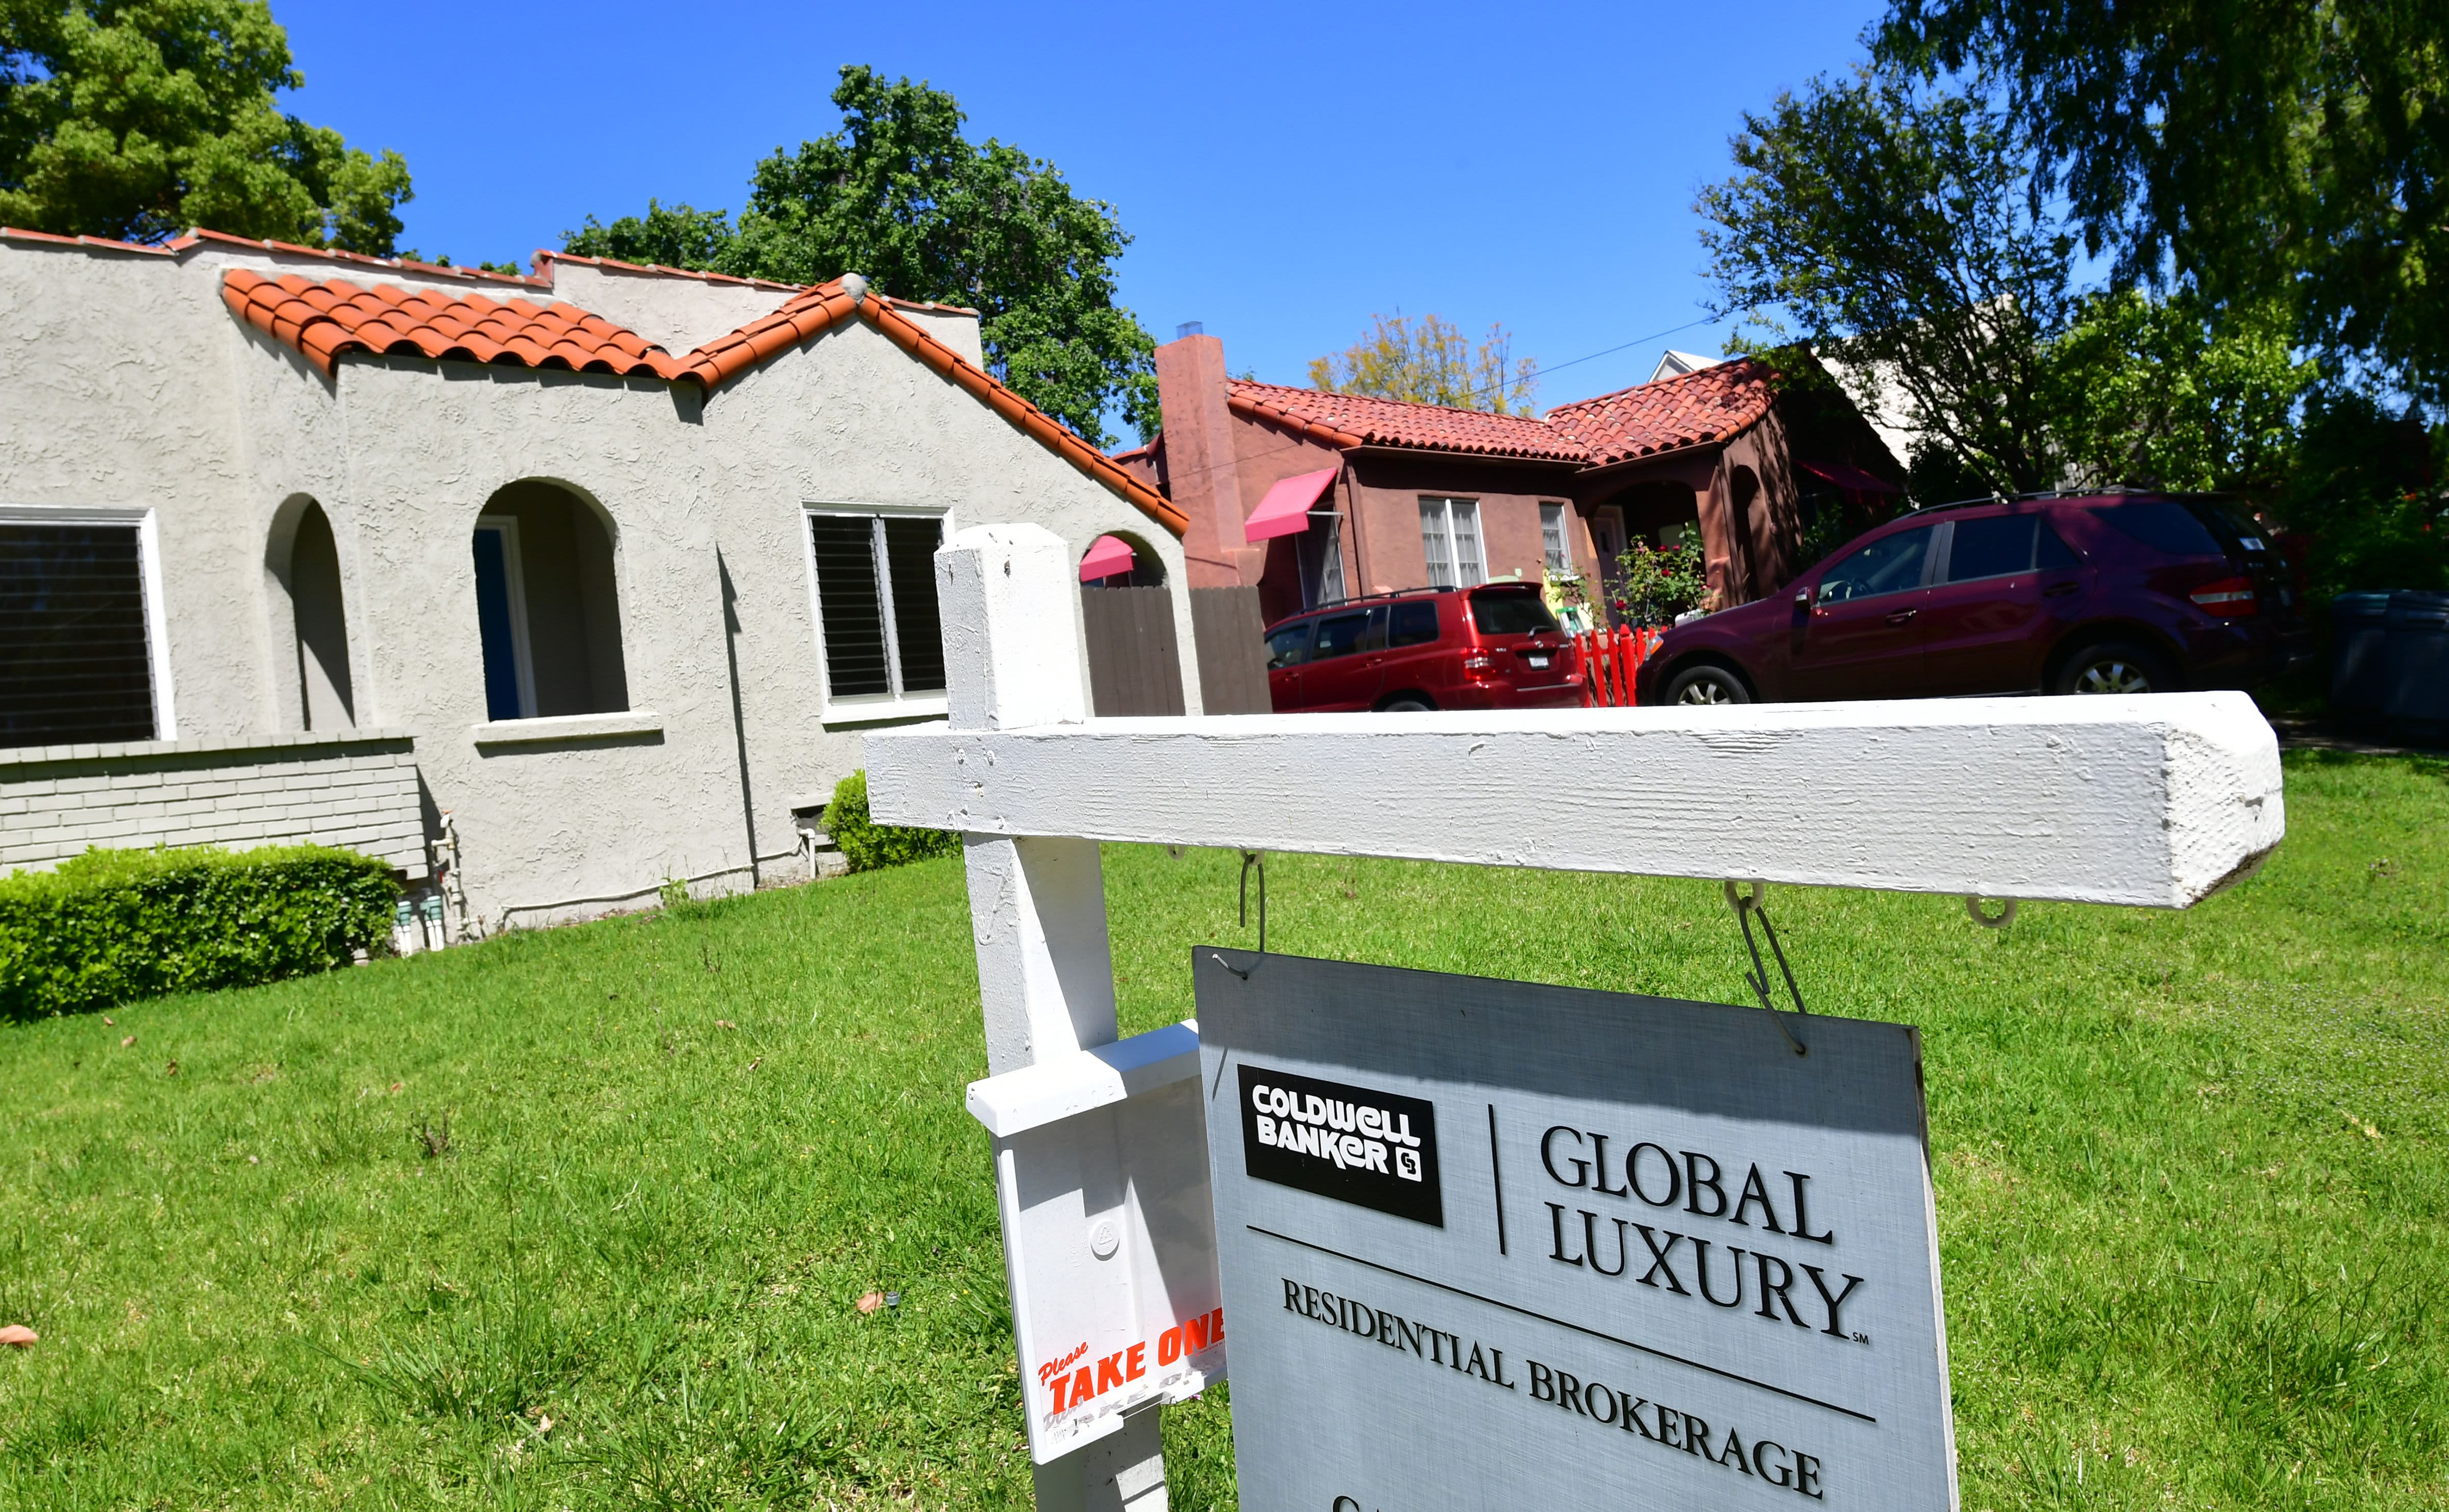 Epic housing shortage may finally be starting to lift, as surprising number of new listings hit market in June